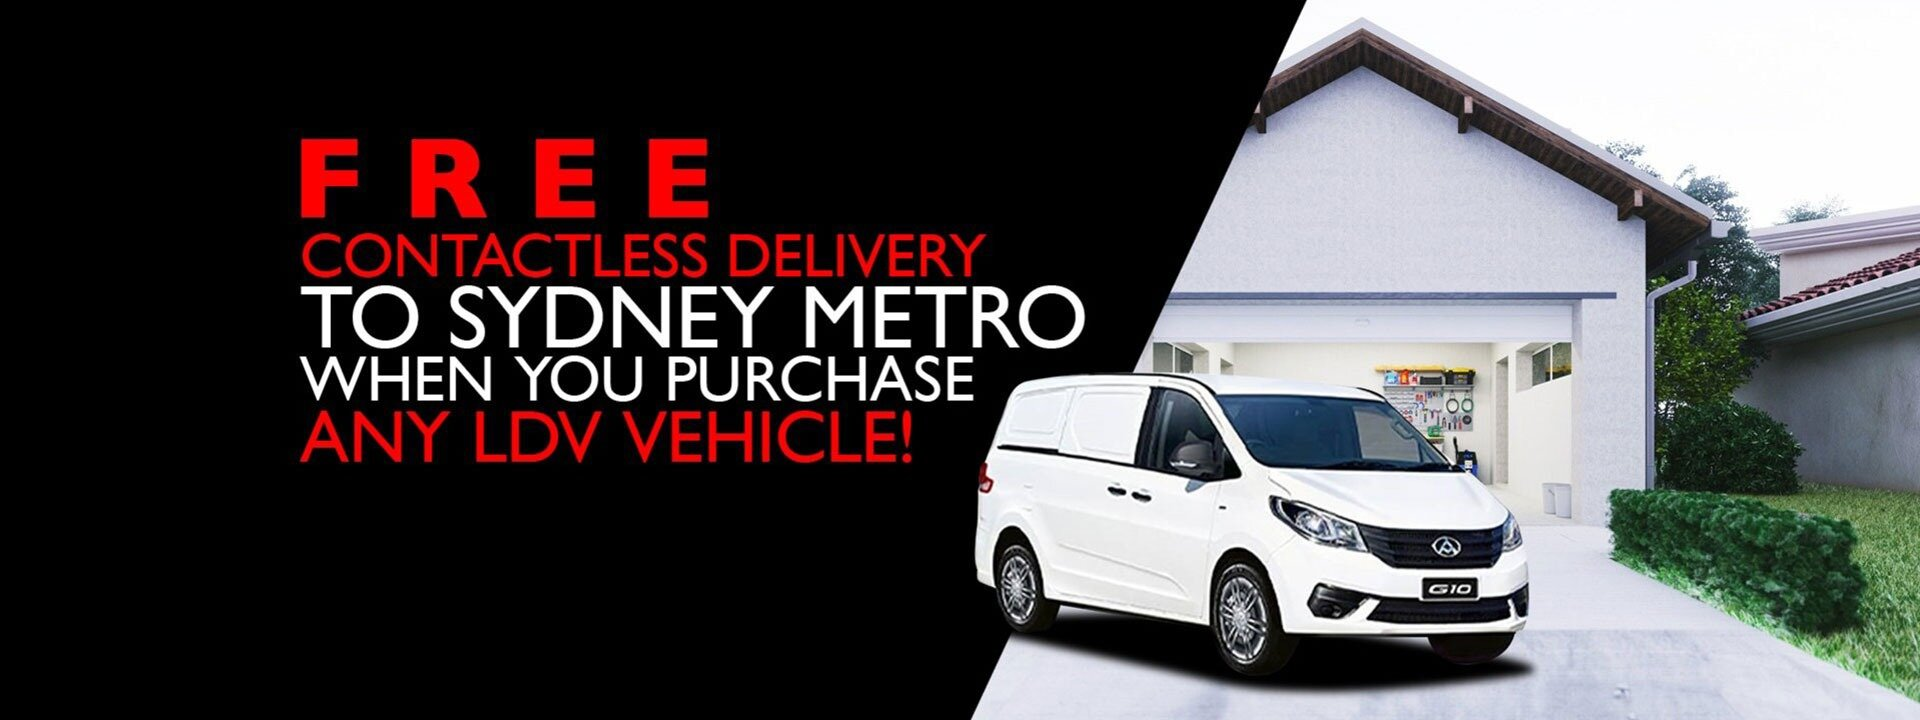 Free Contactless Delivery to Sydney Metro When You Purchase Any LDV Vehicle